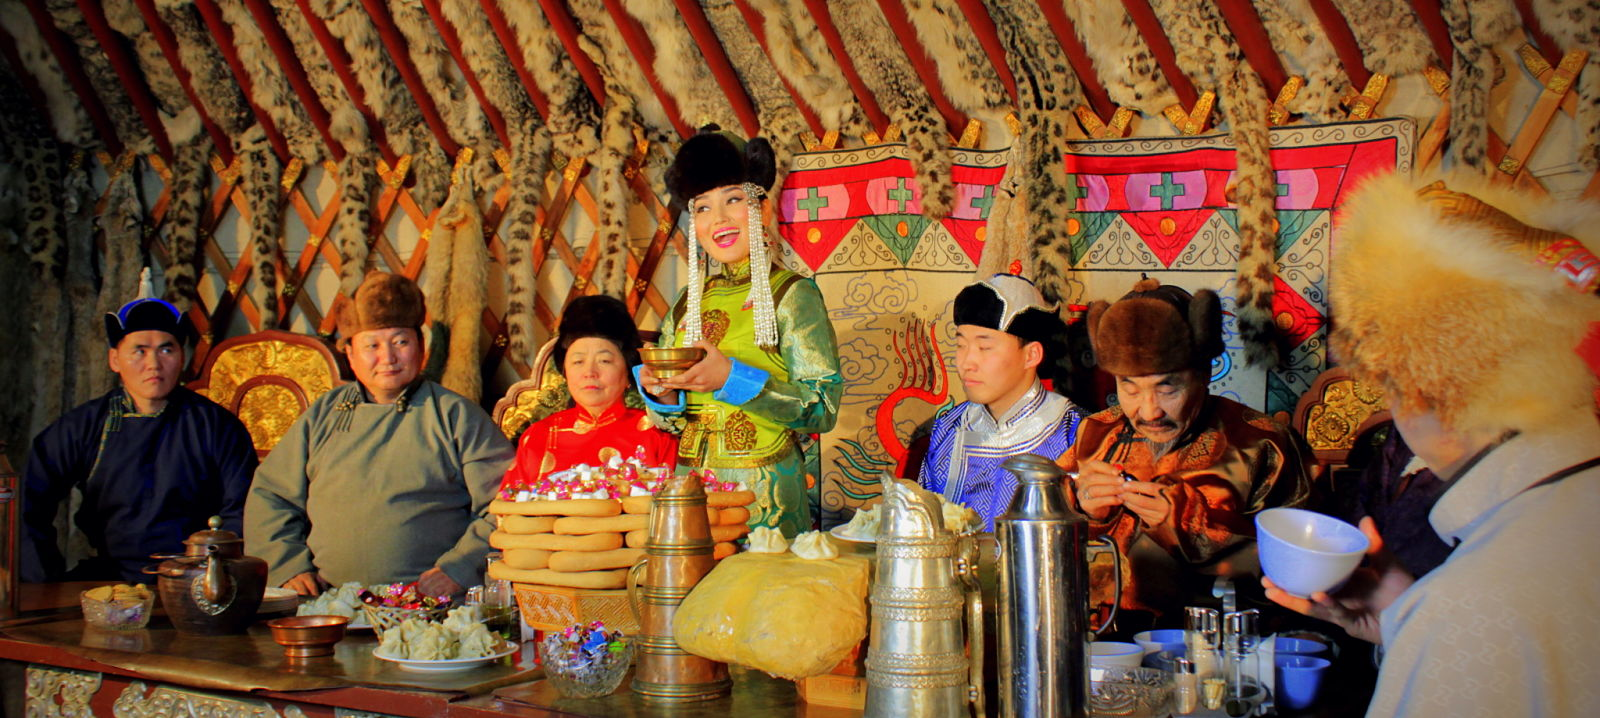 traditional holiday tsagaan sar Join the 2016 tsagaan sar food drive challenge and help make the holiday great for some special families in need in ub.